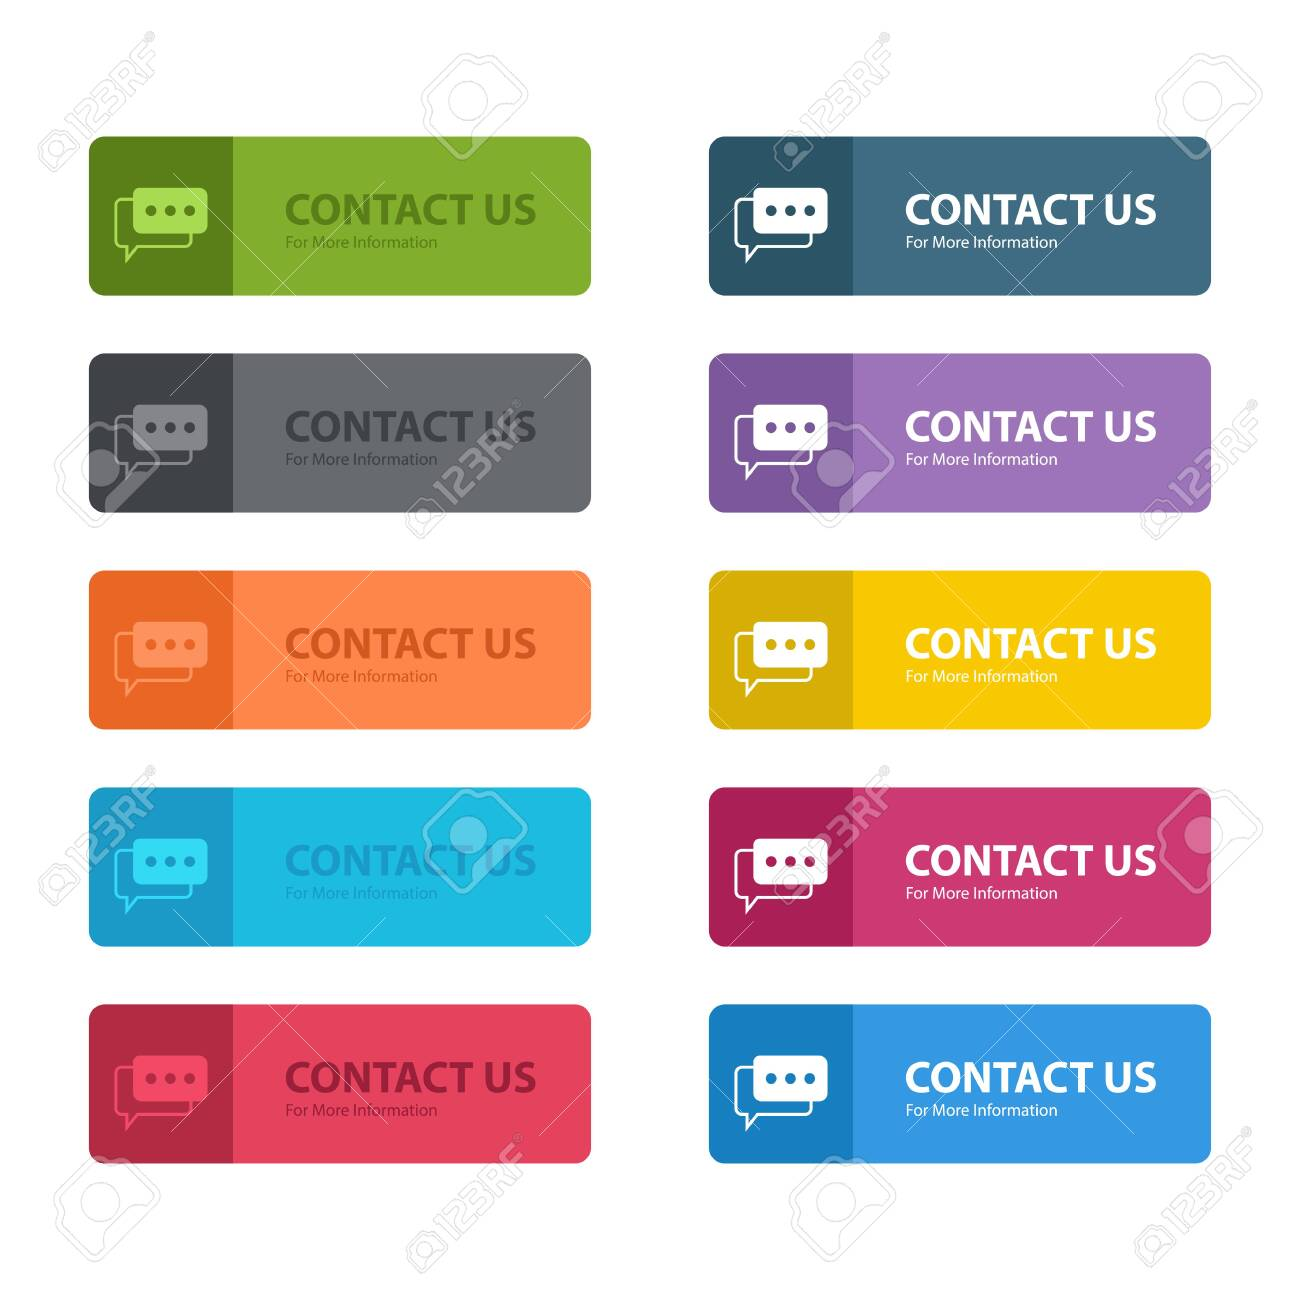 Contact us button vector design illustration isolated on white background - 152012725